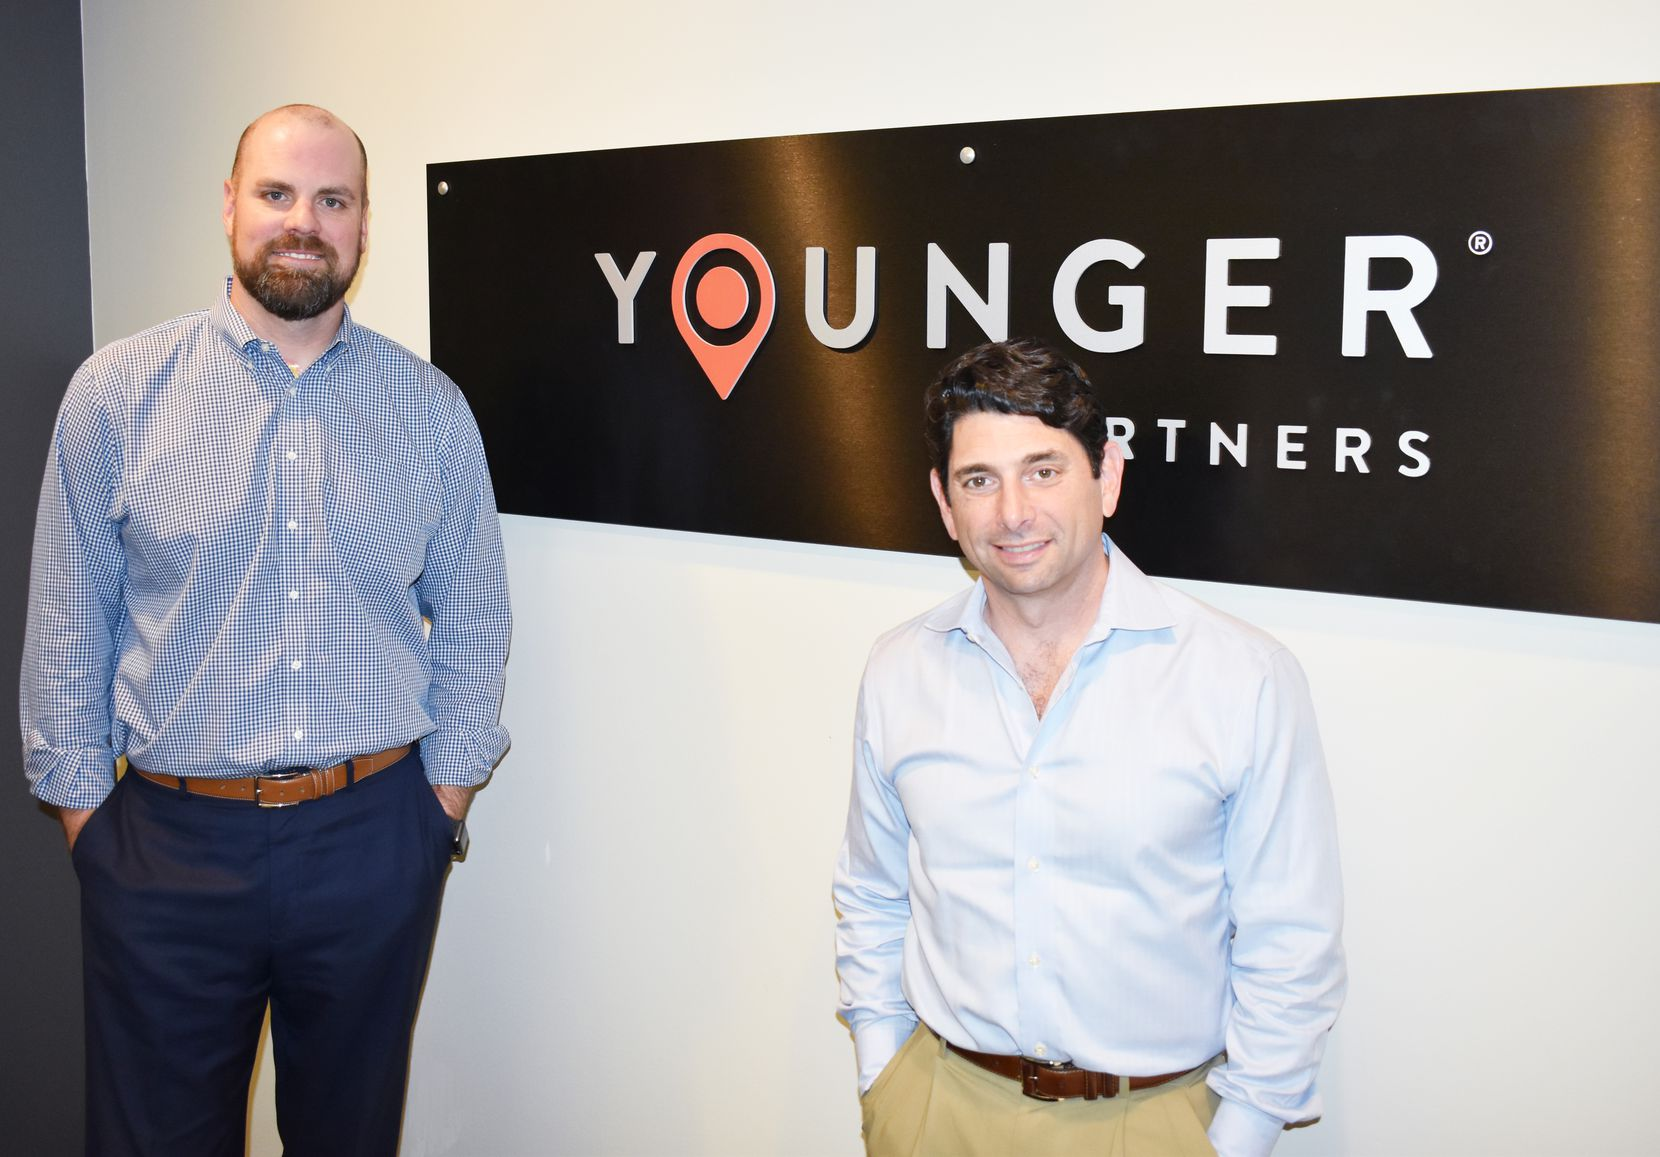 Scot Farber (right)  and Tom Strohbehn have joined Younger Partners.